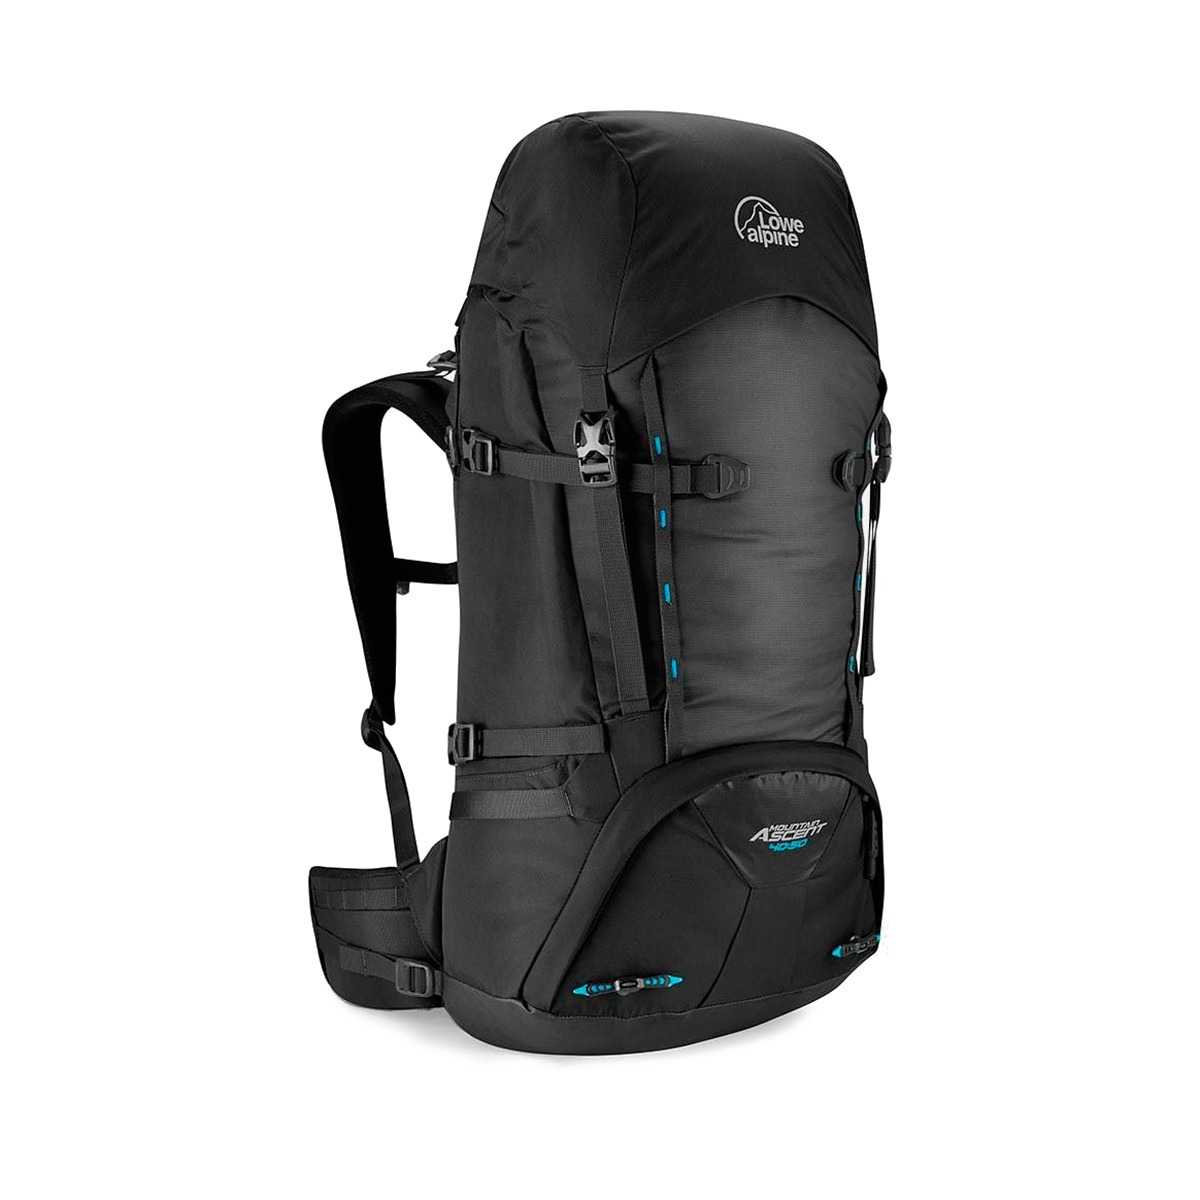 Lowe Alpine Mochila Mountain Ascent 40:50 Onyx Negro Gris